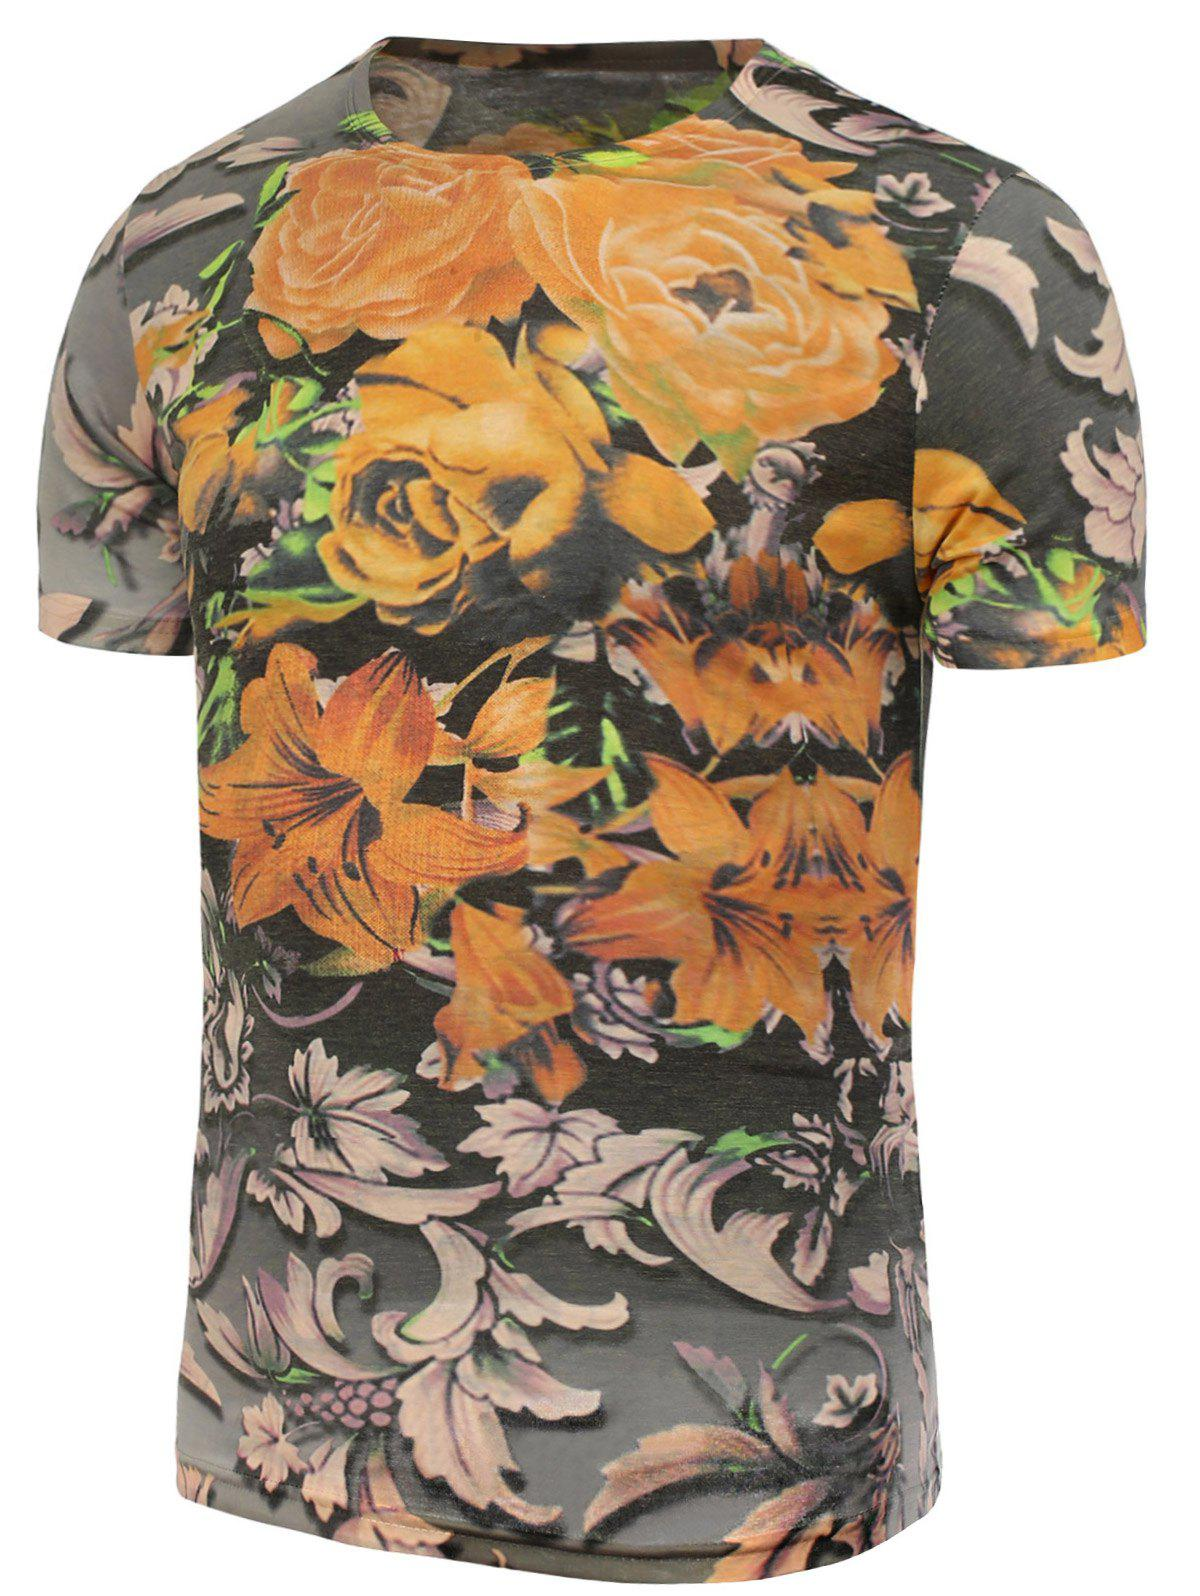 Flowers Printed T-Shirt - COLORMIX XL